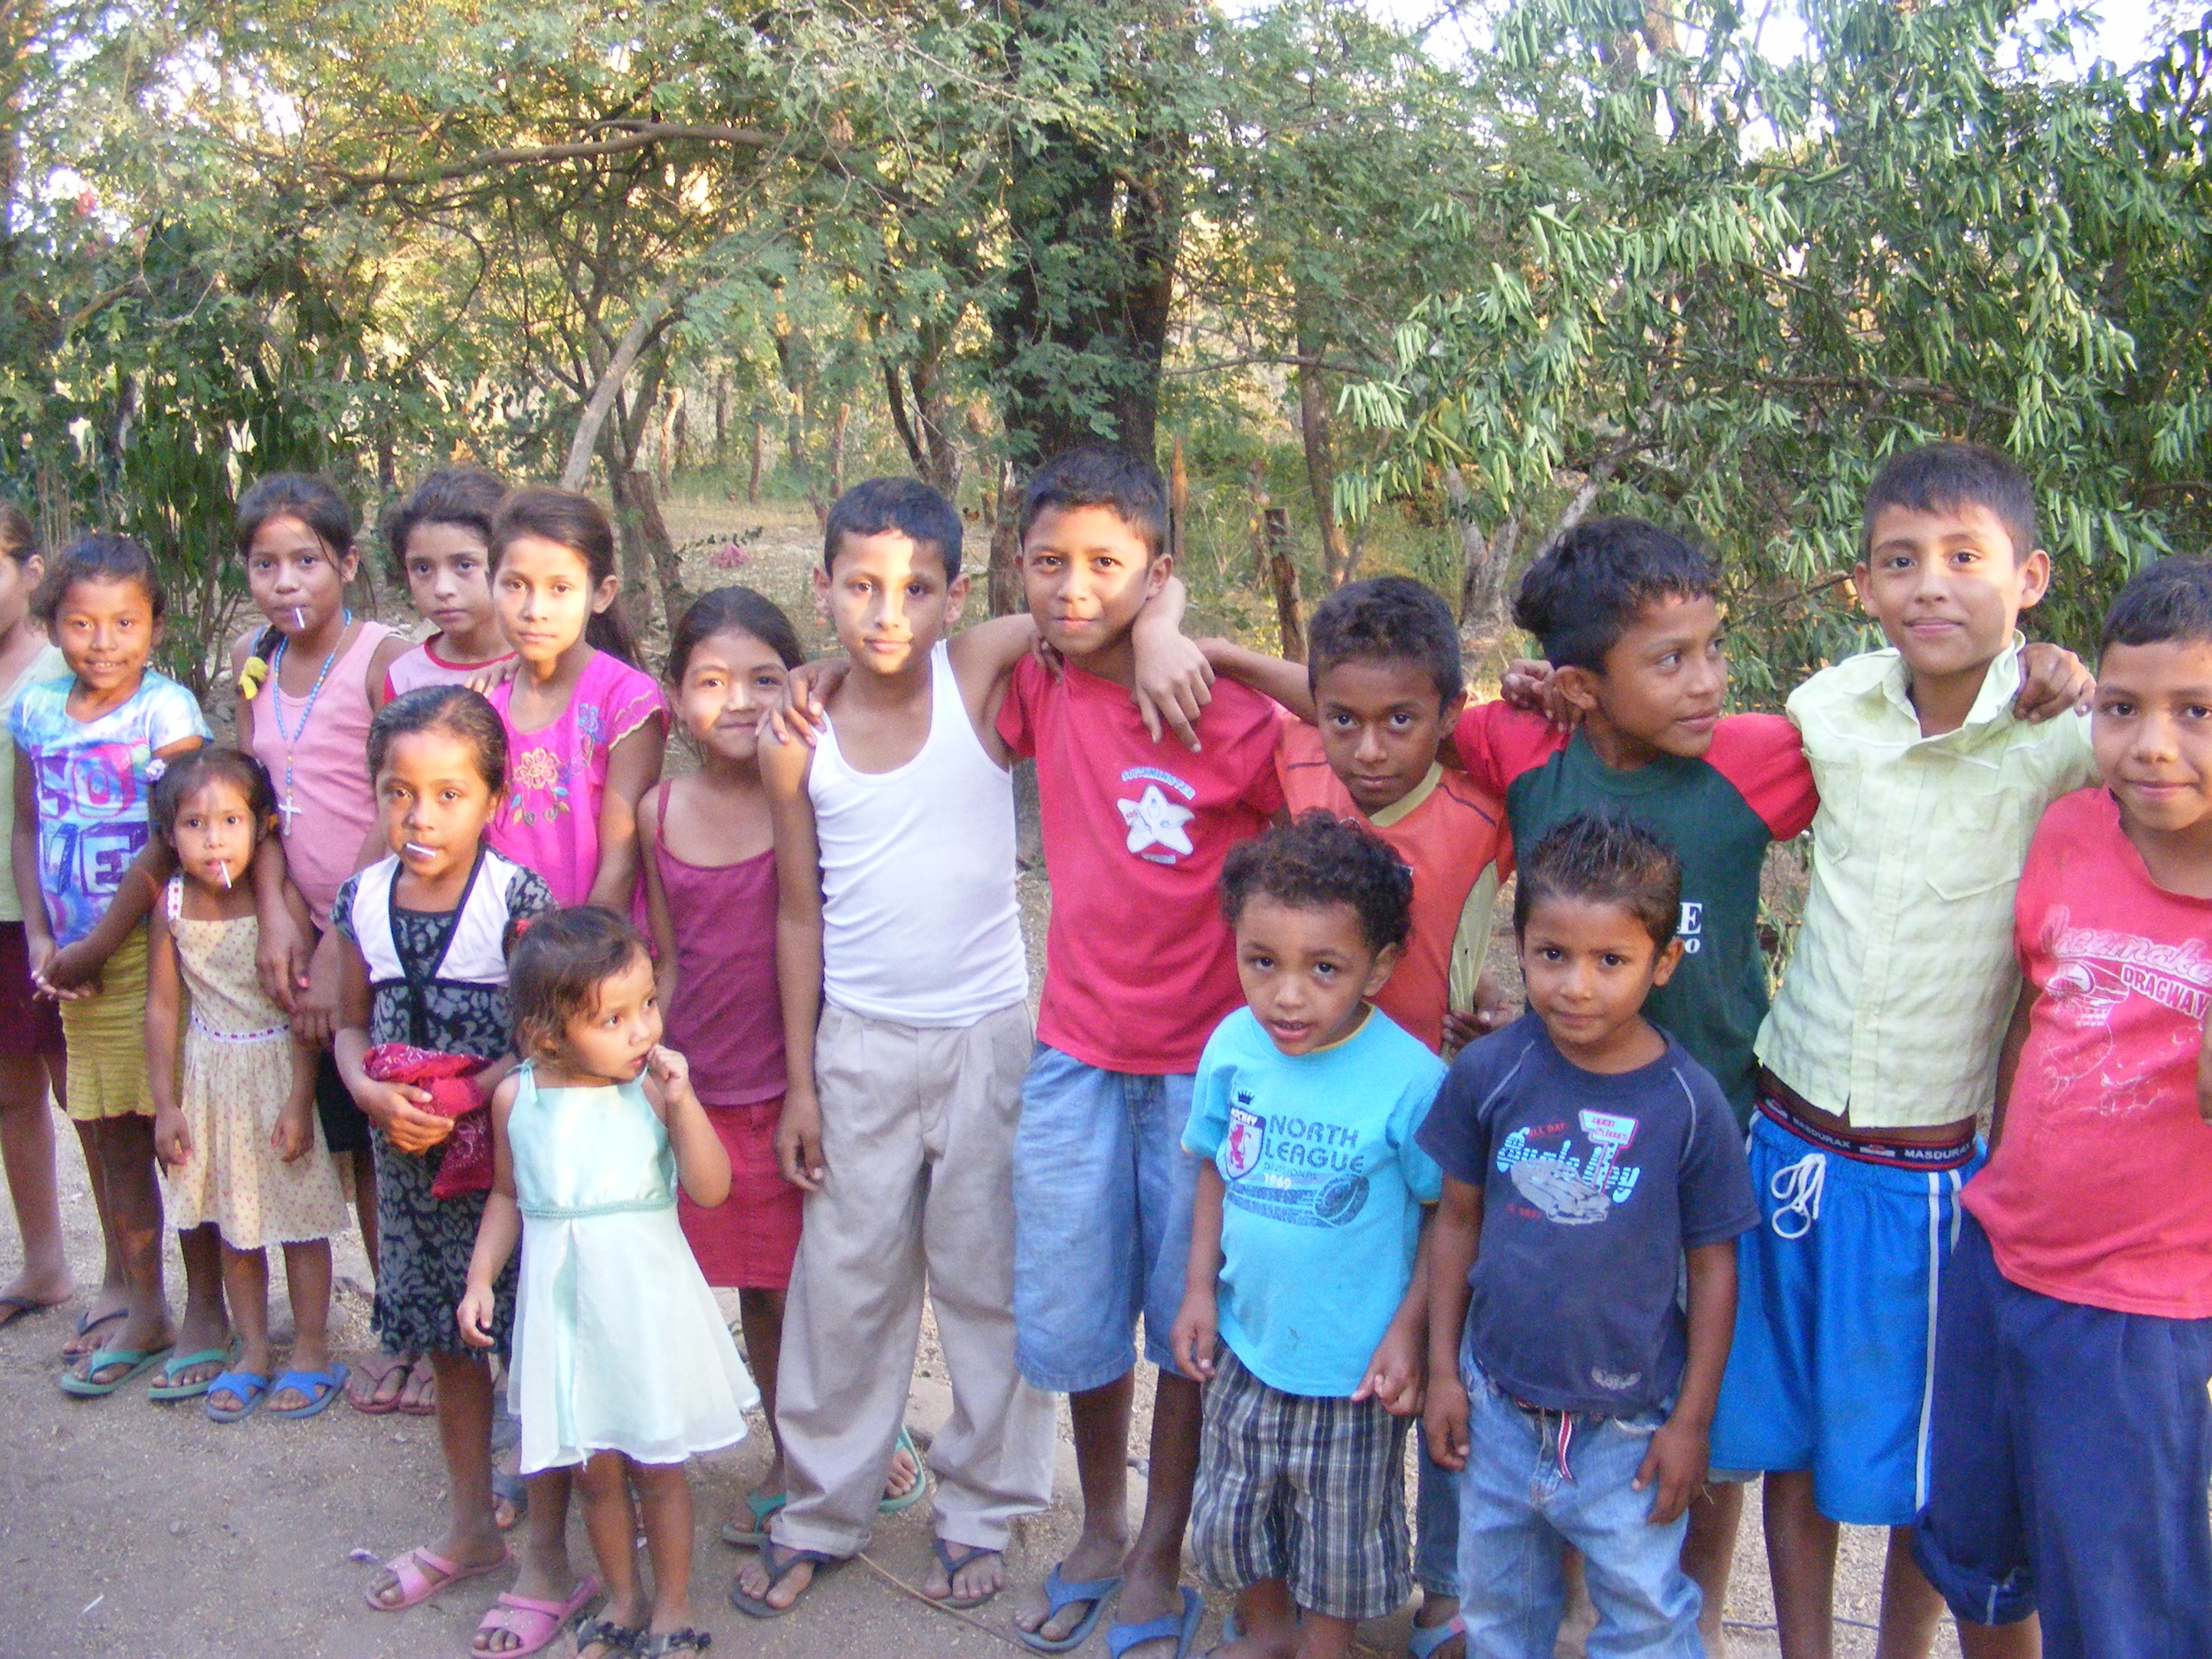 Children at a house church in Nicaragua.